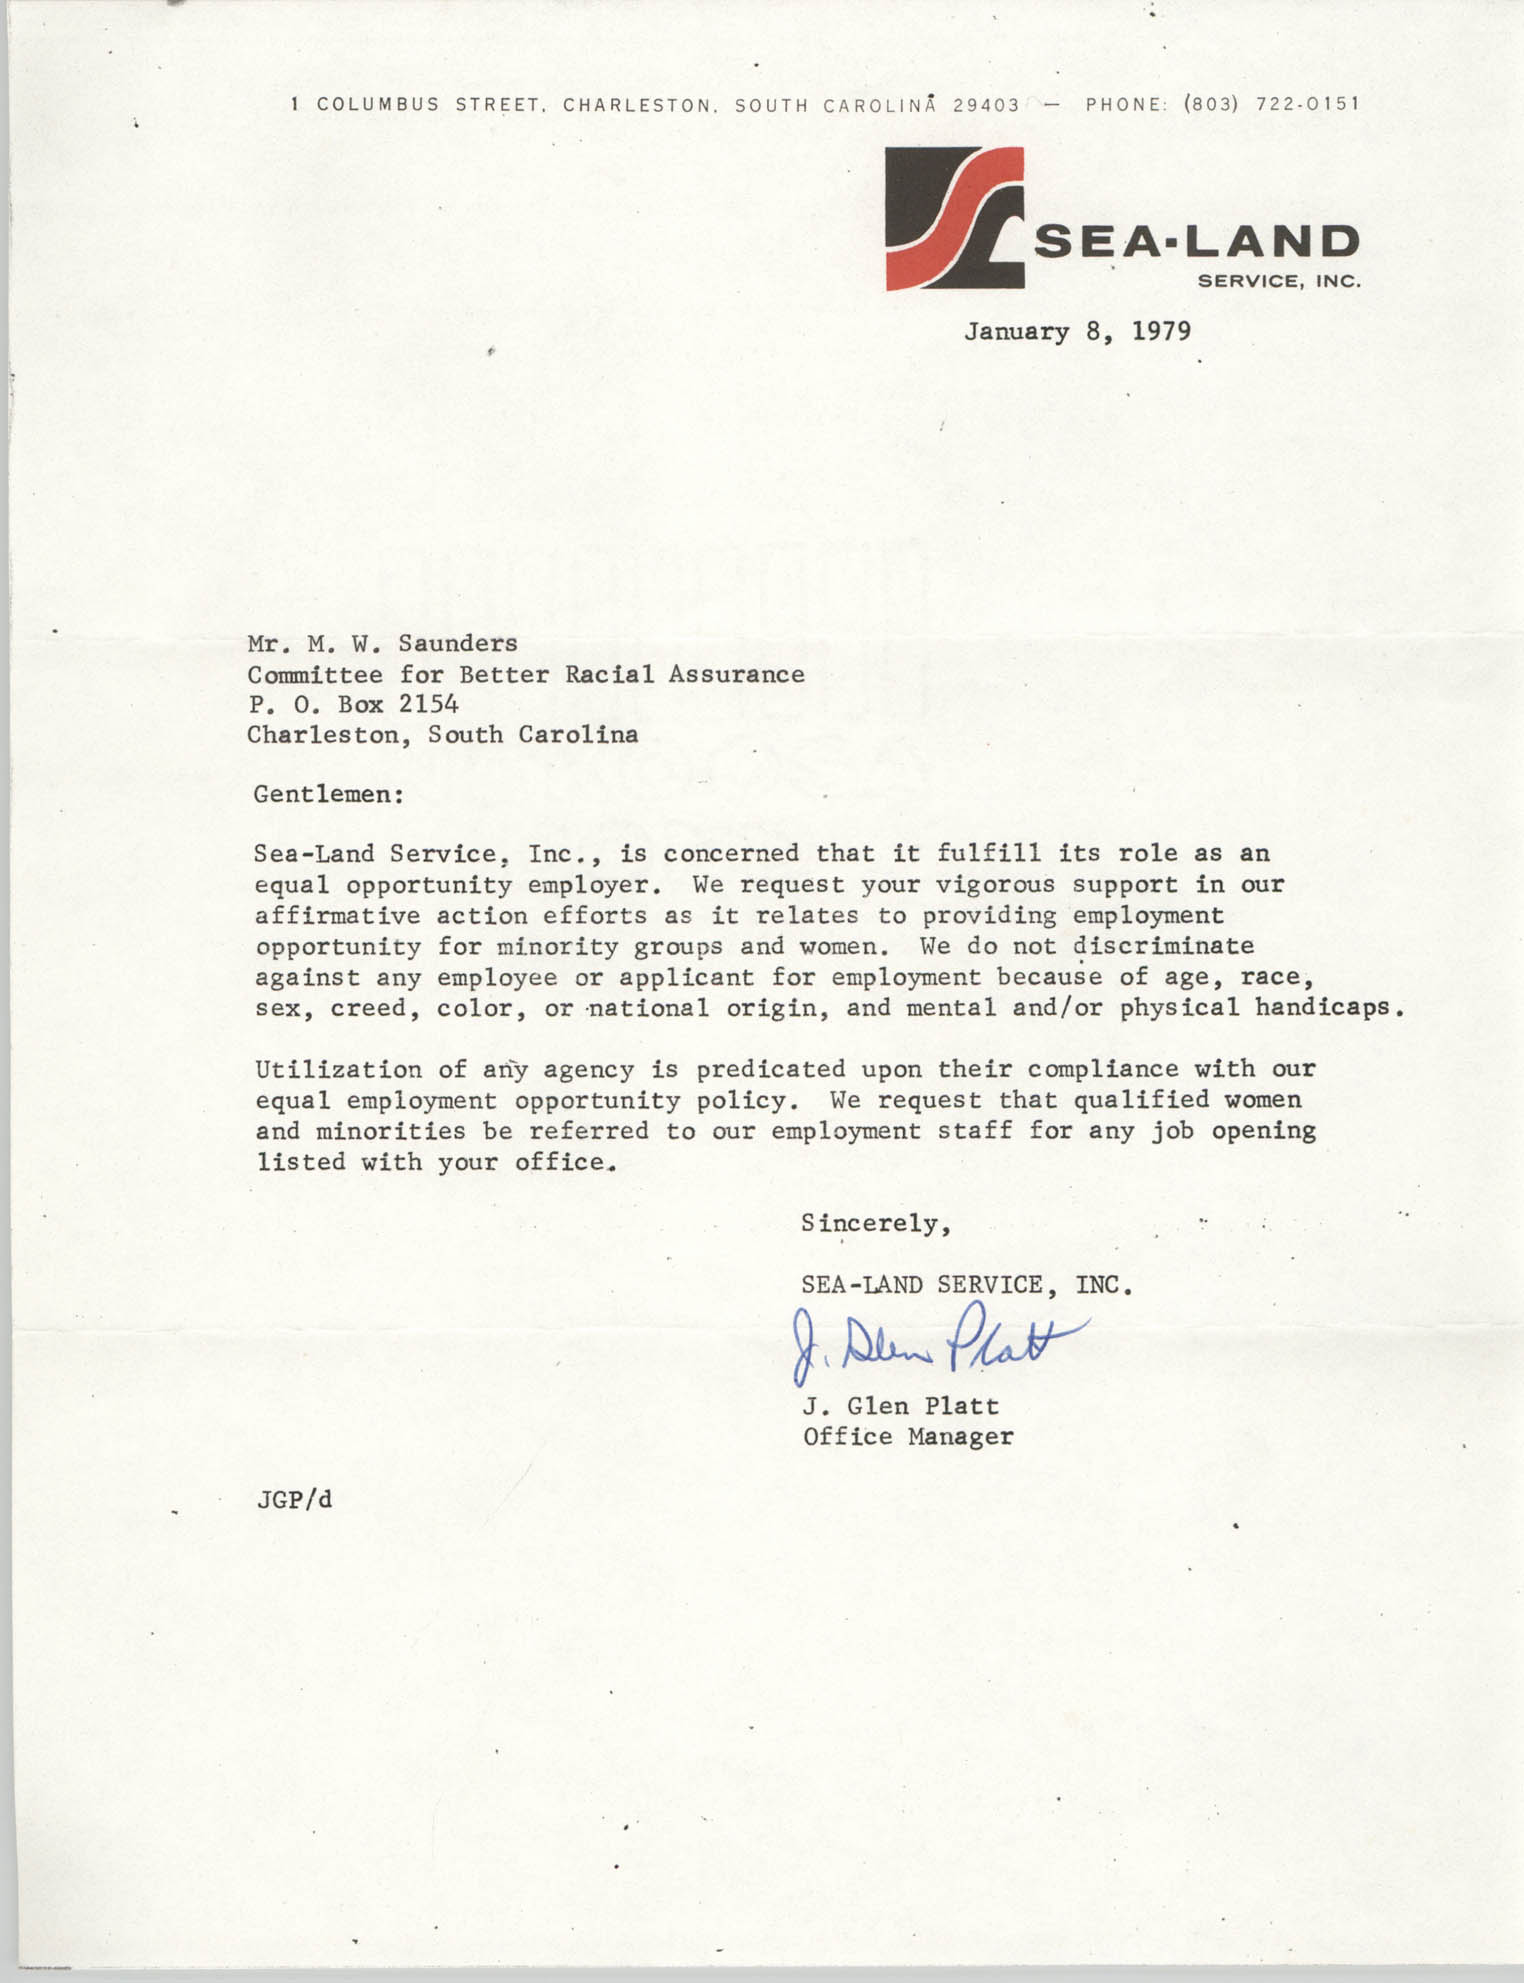 Letter from J. Glen Platt to William Saunders, January 8, 1979